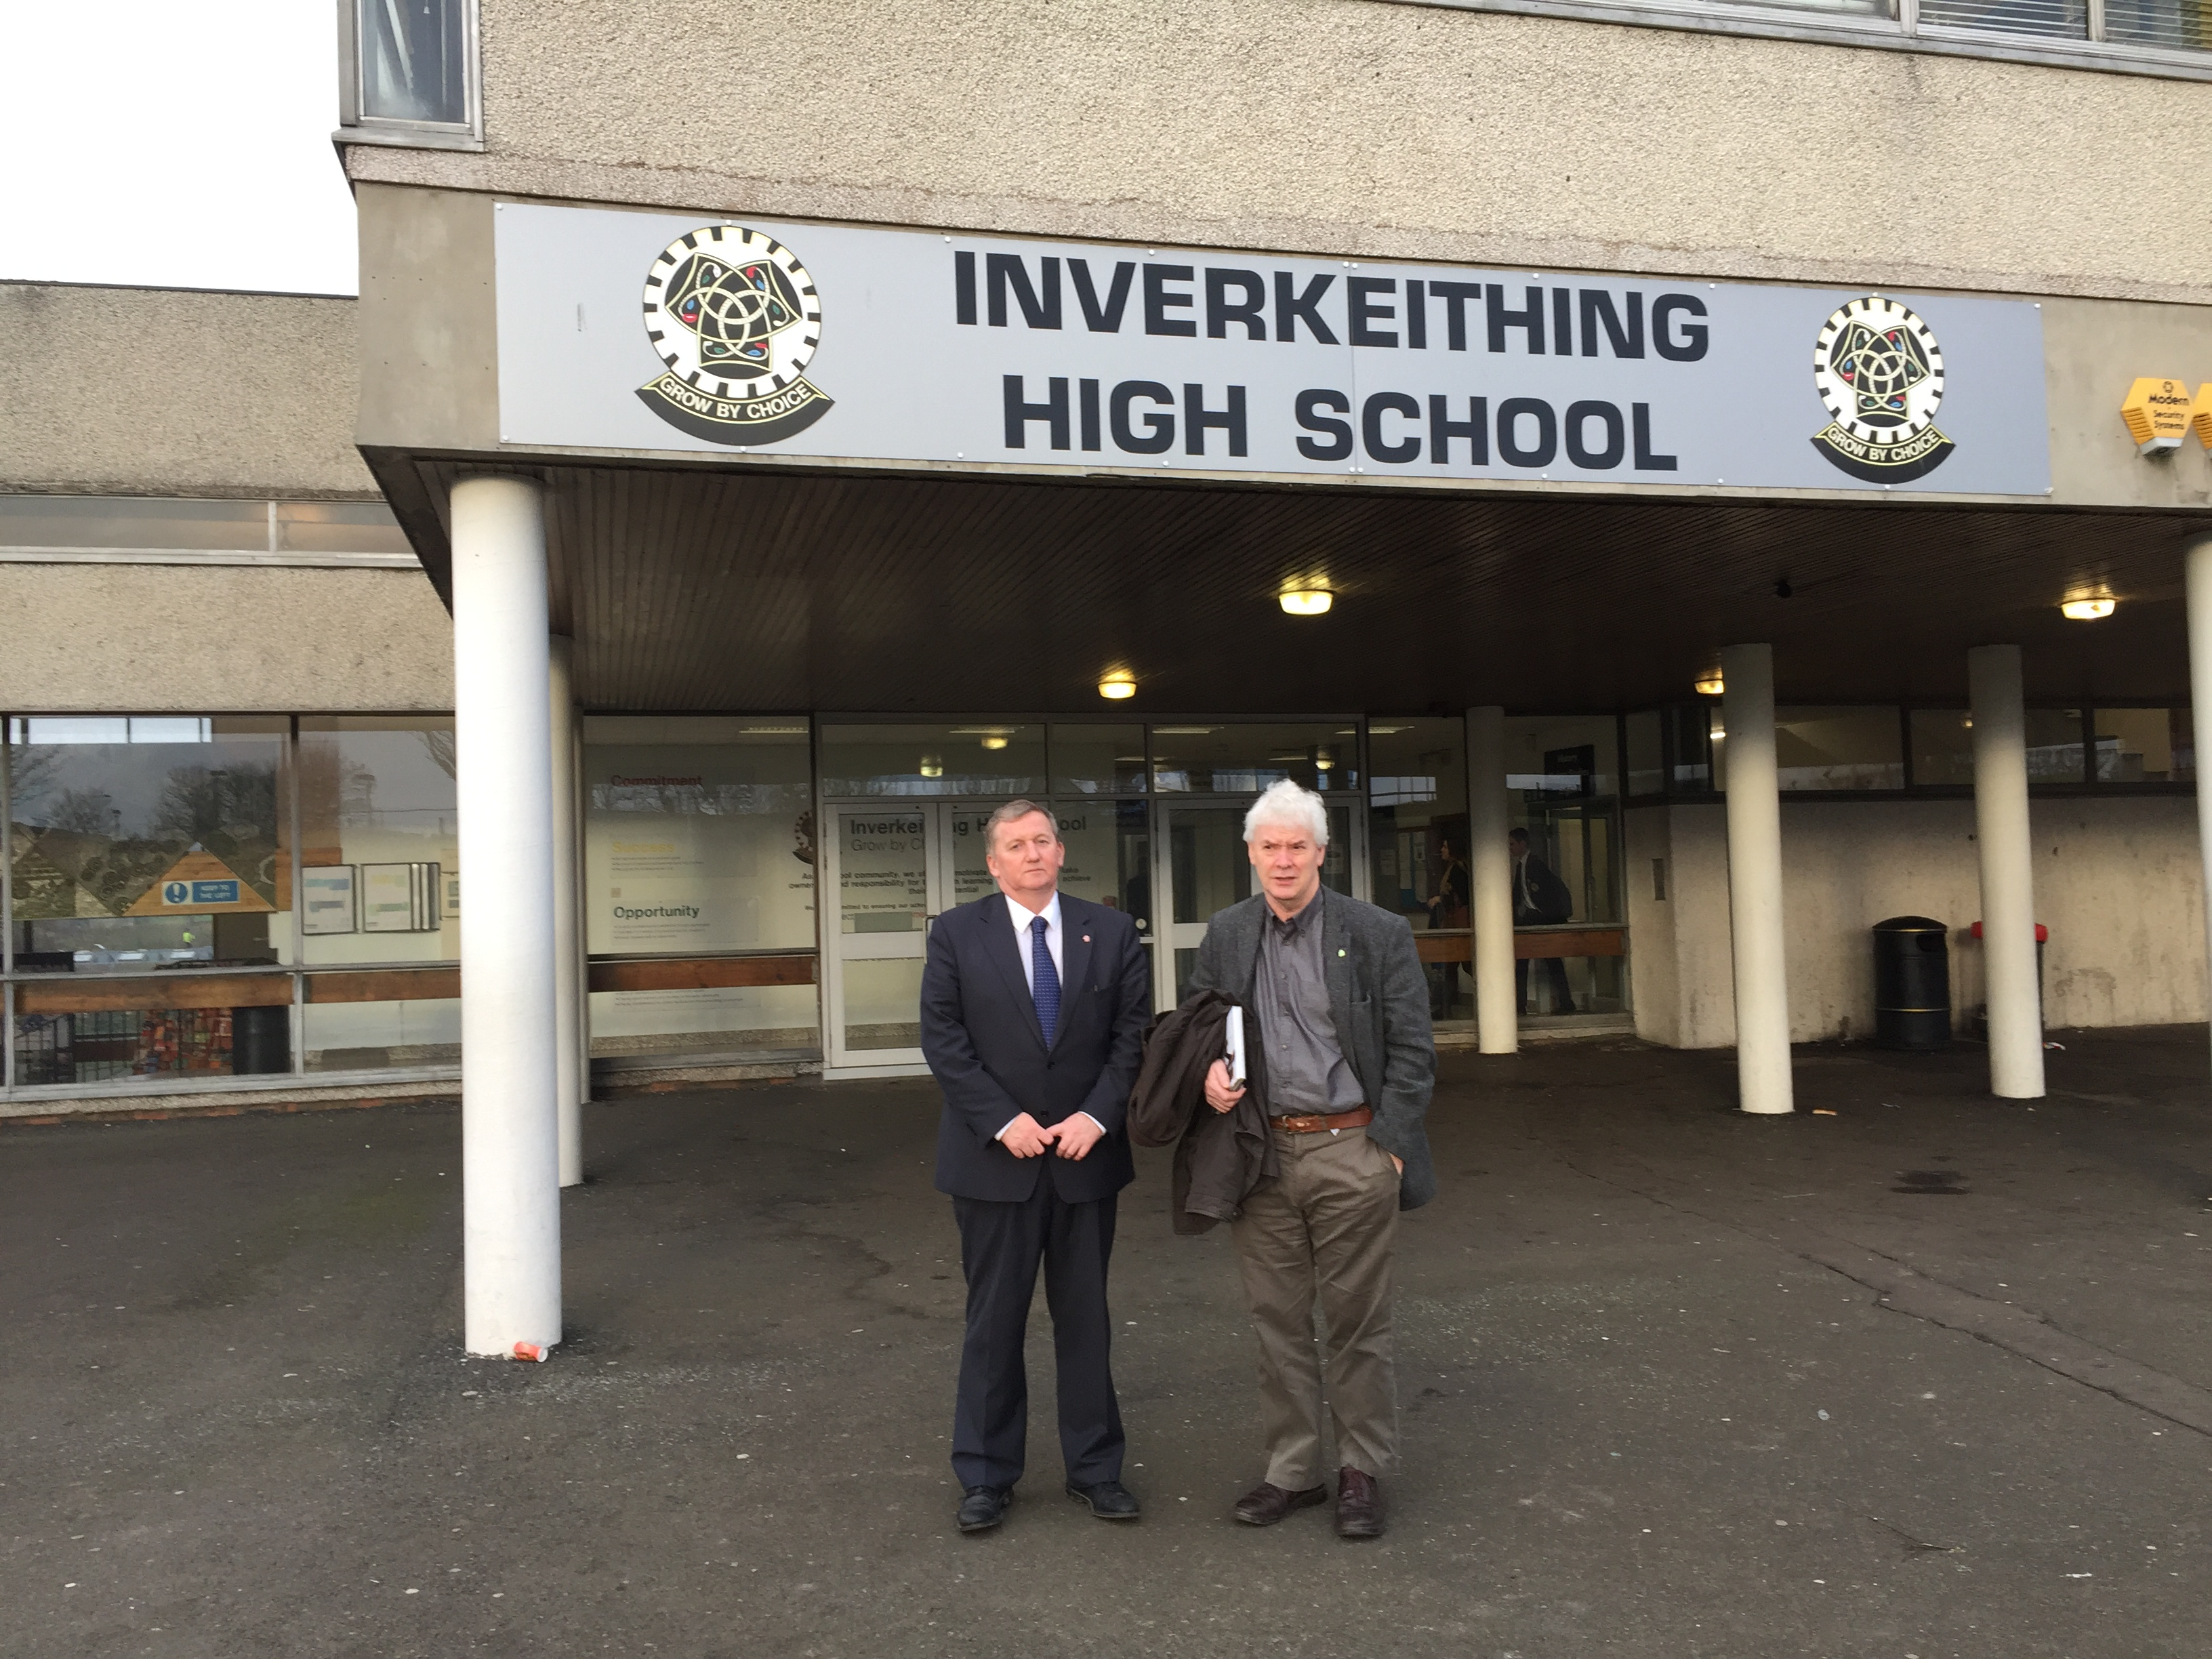 Inverkeithing with Bryan